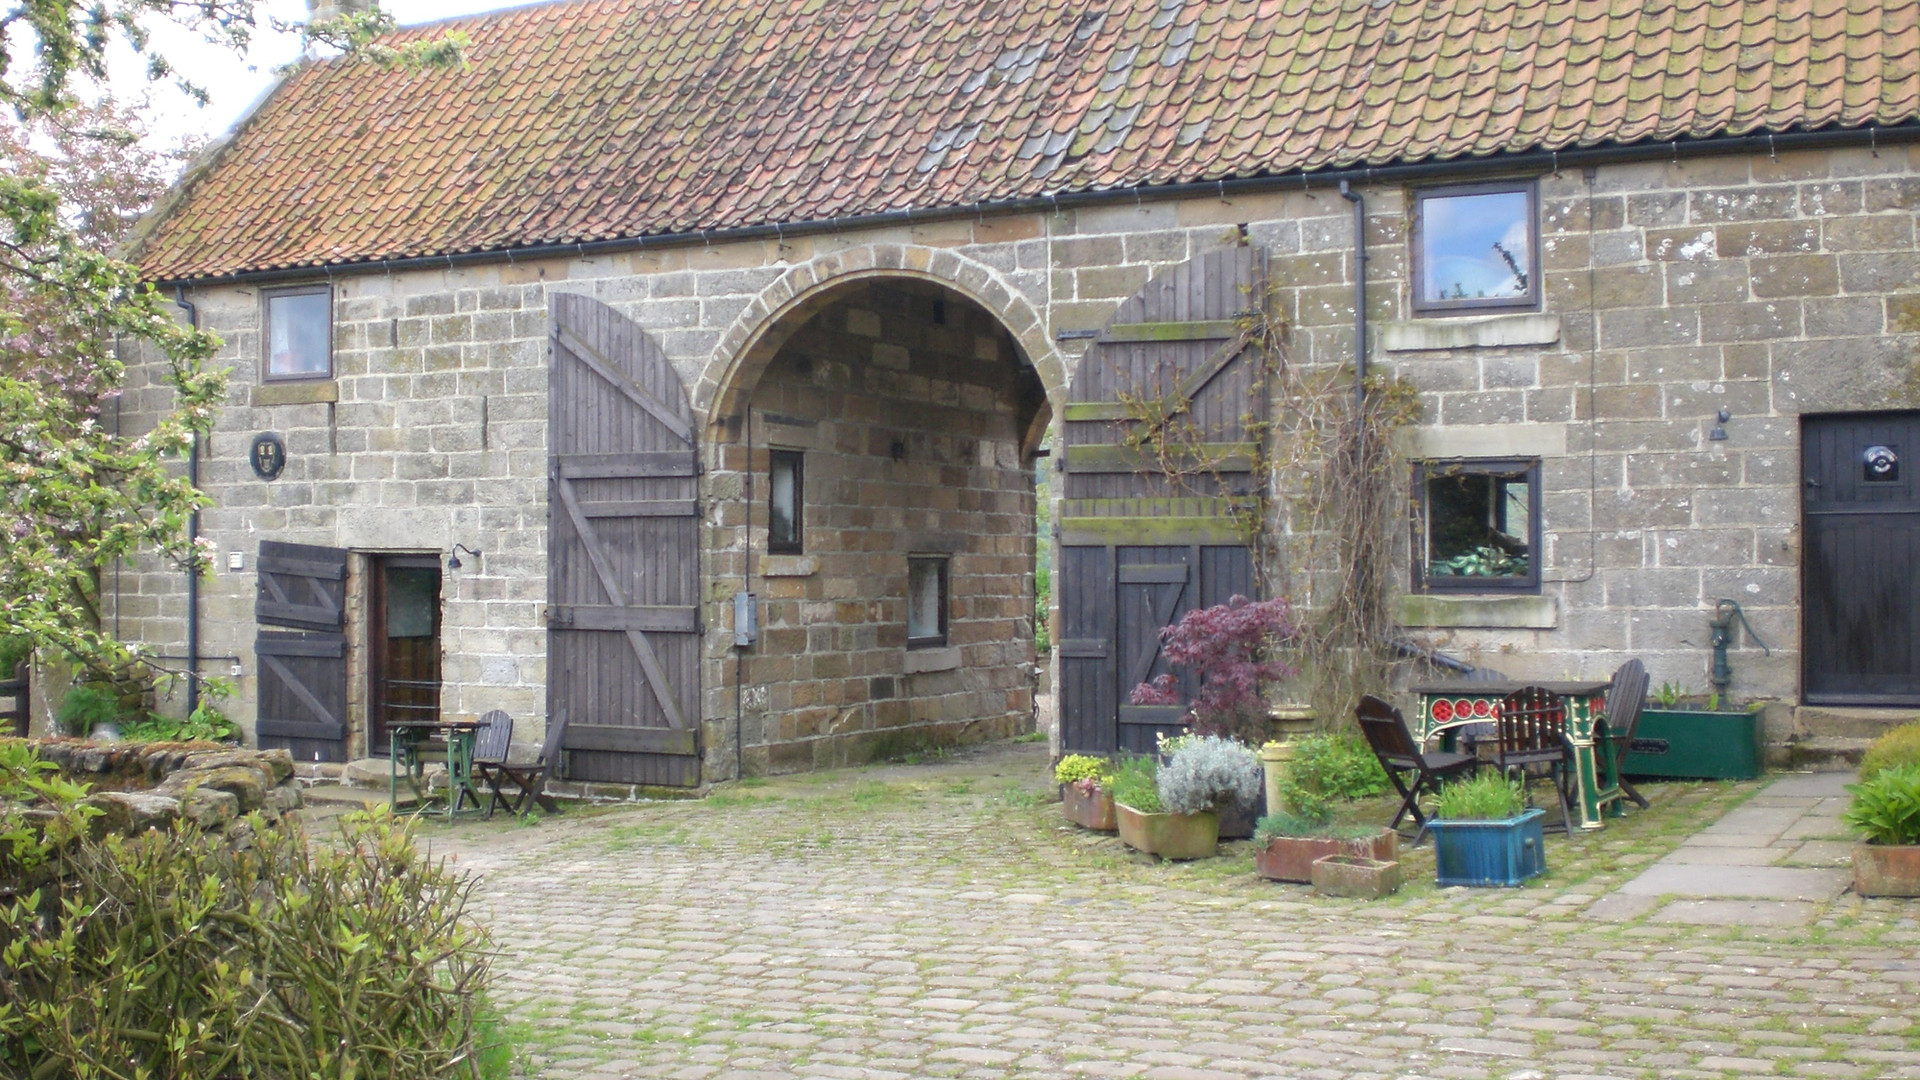 Holiday Cottages The Old Sheaf Store, Threshing Barn